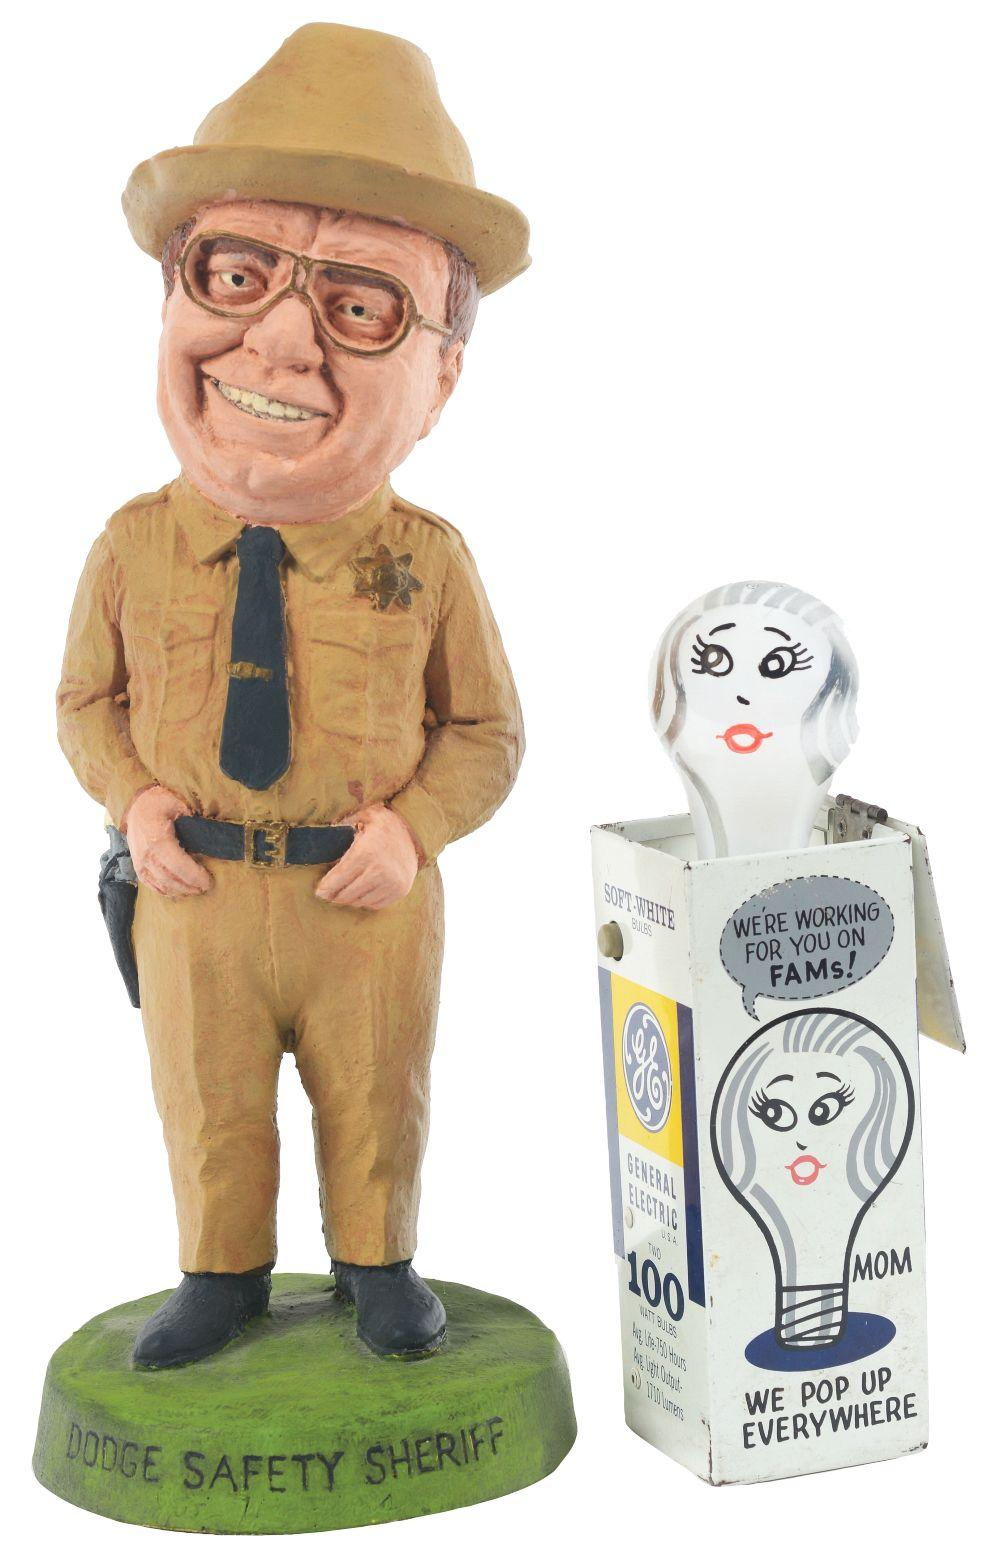 Lot 2700: Lot of 2: Advertising Figures - General Electric, Dodge Safety Sheriff.